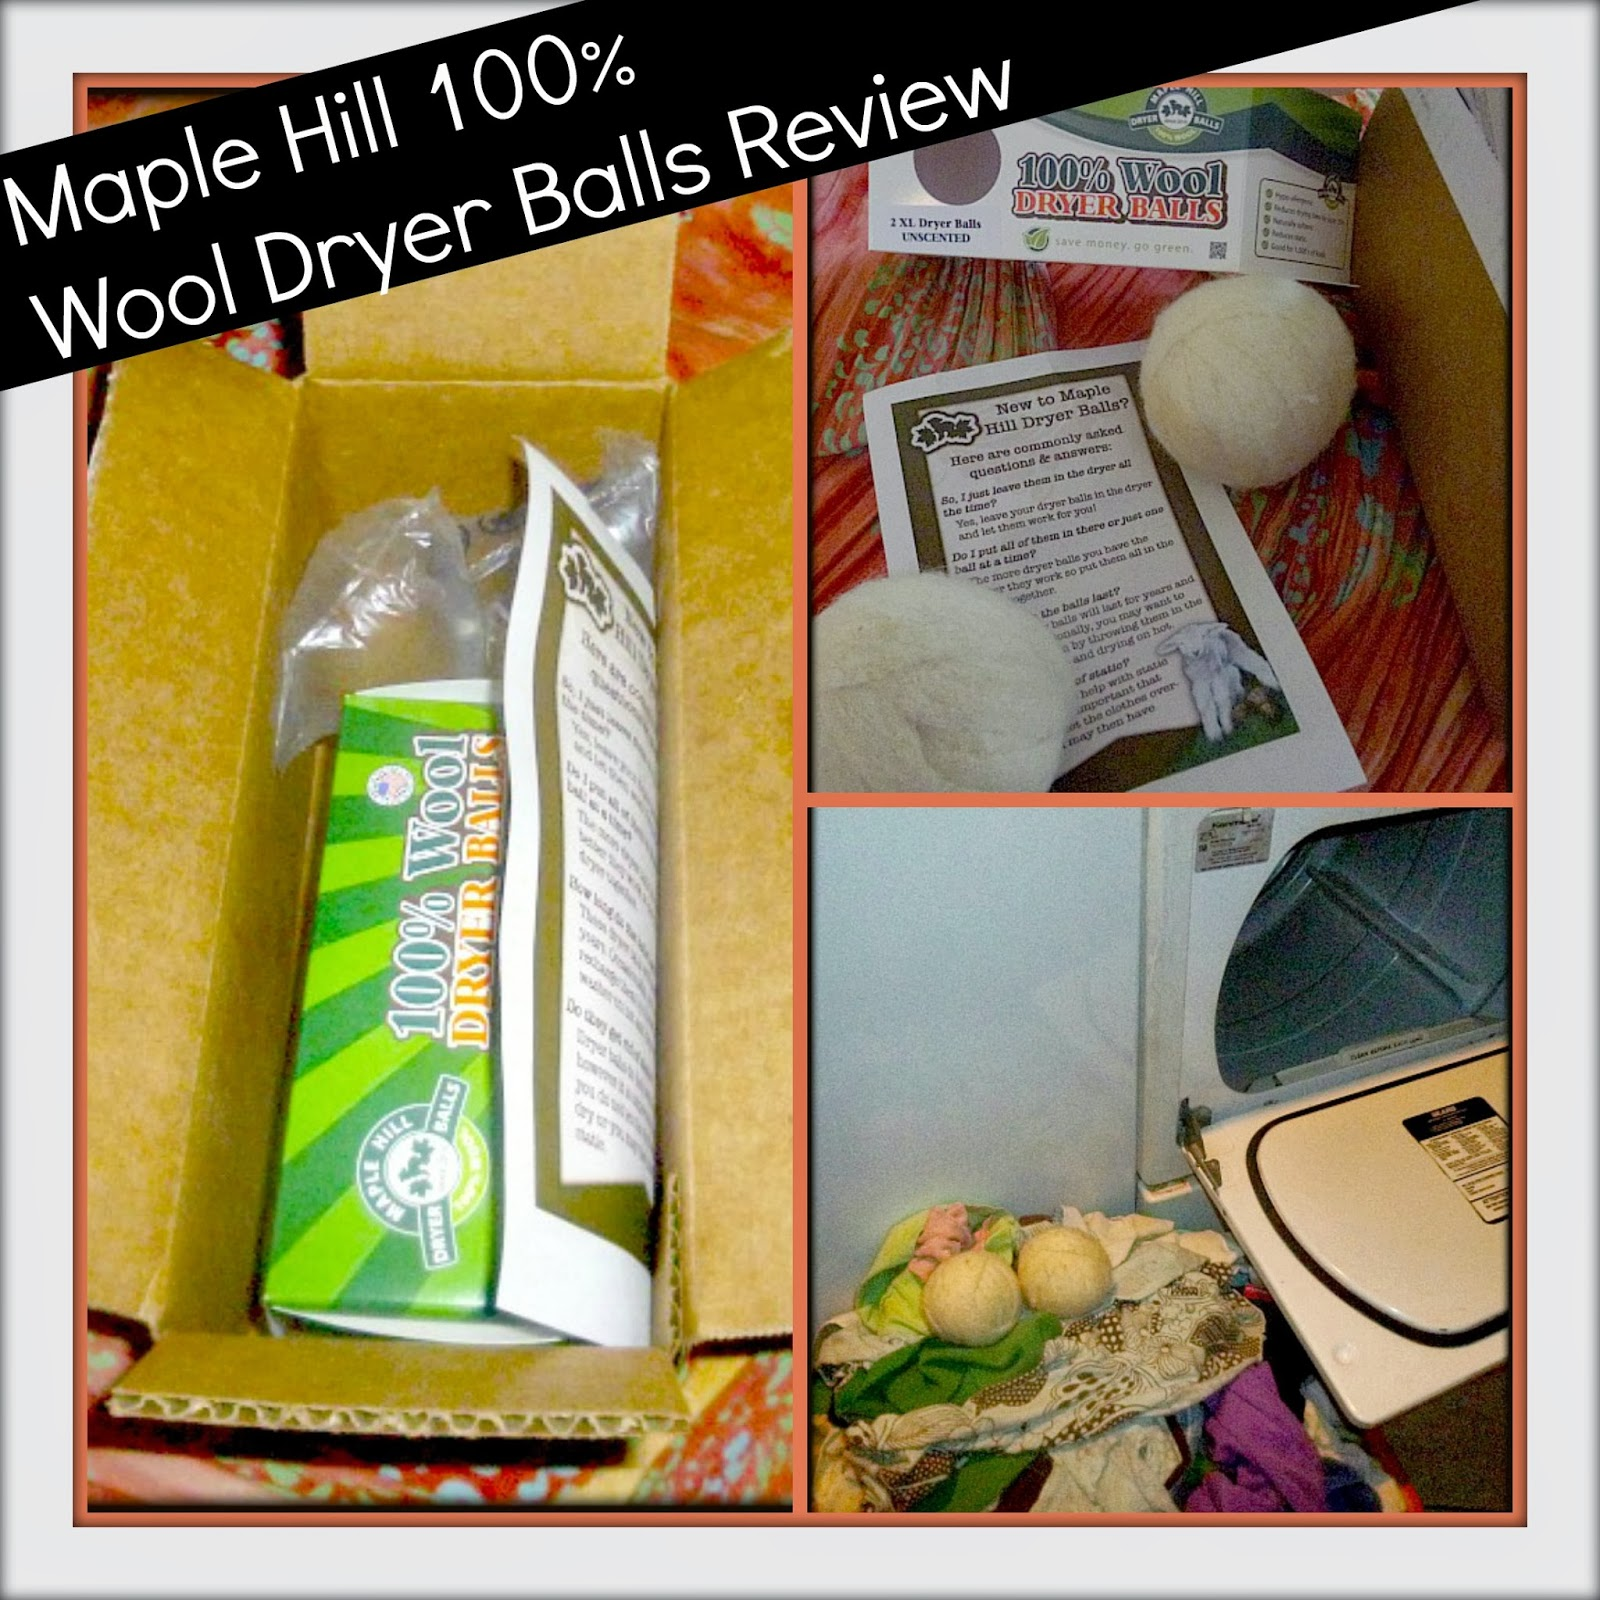 http://maplehillnaturals.com/